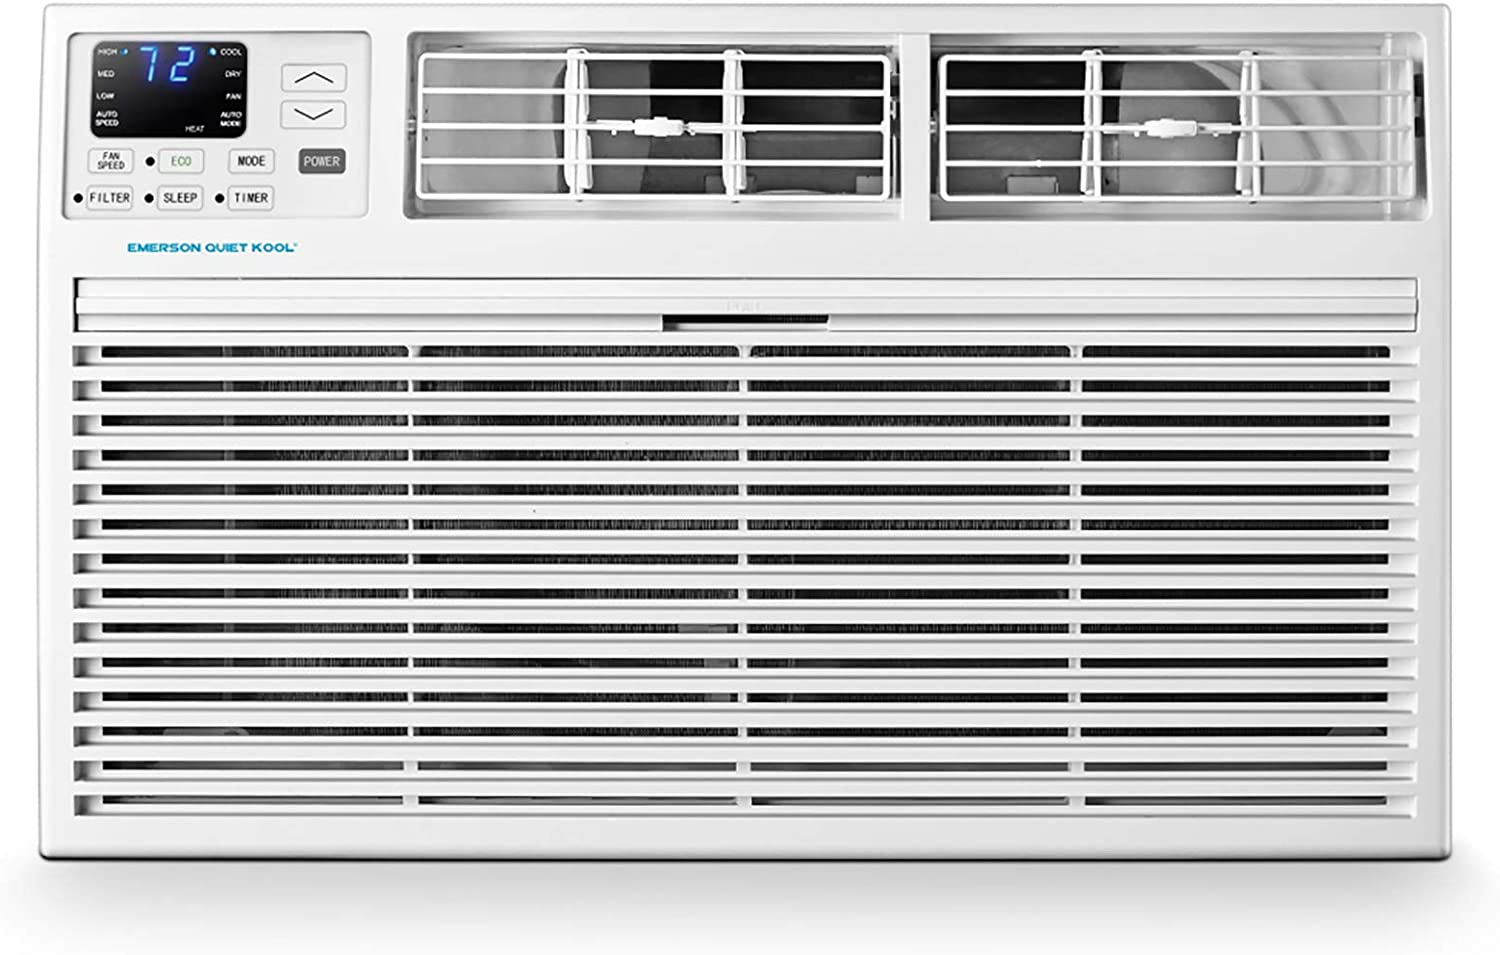 Emerson Quiet Kool 230V 14K BTU Through The Wall Heat and Cool Combo Remote Control, EATH14RD2 Air Conditioner, 14000 Standard, White